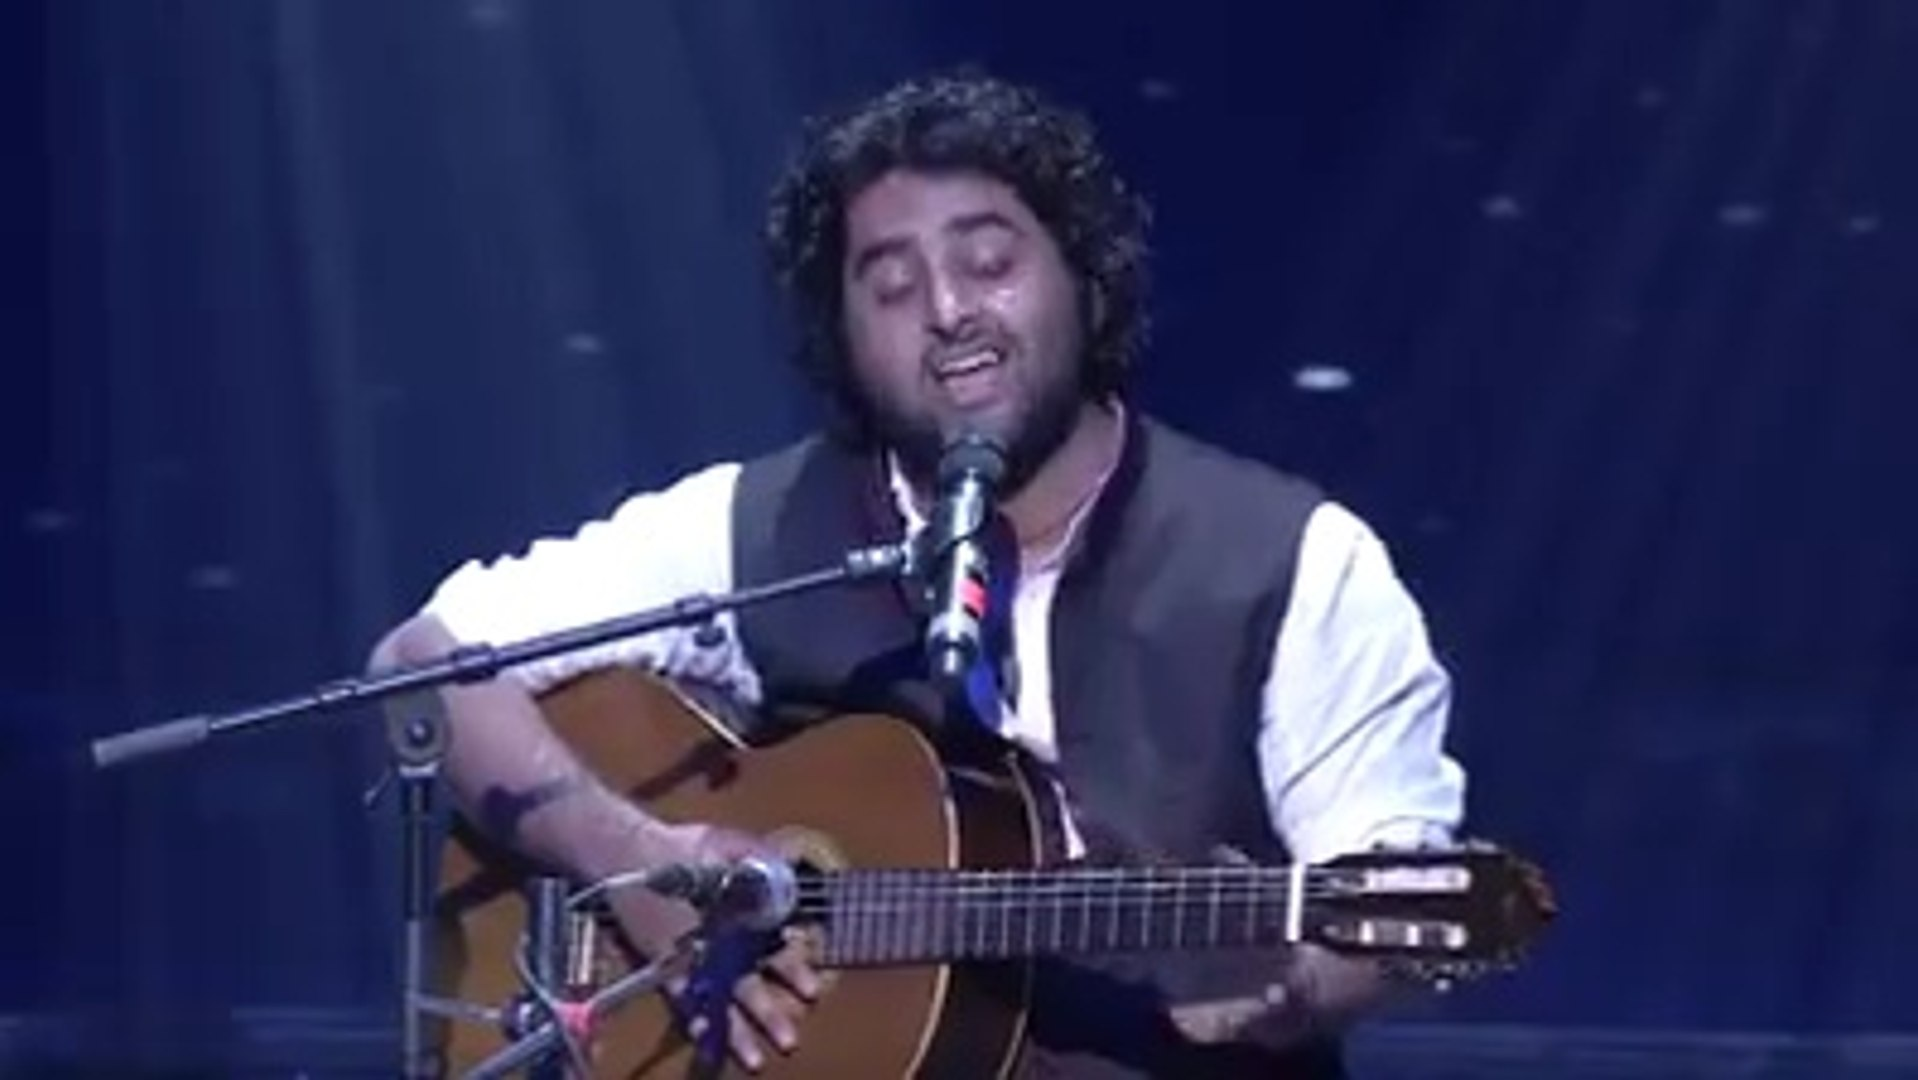 arijit singh latest song best of arijit.....arijit singh latest songs wow